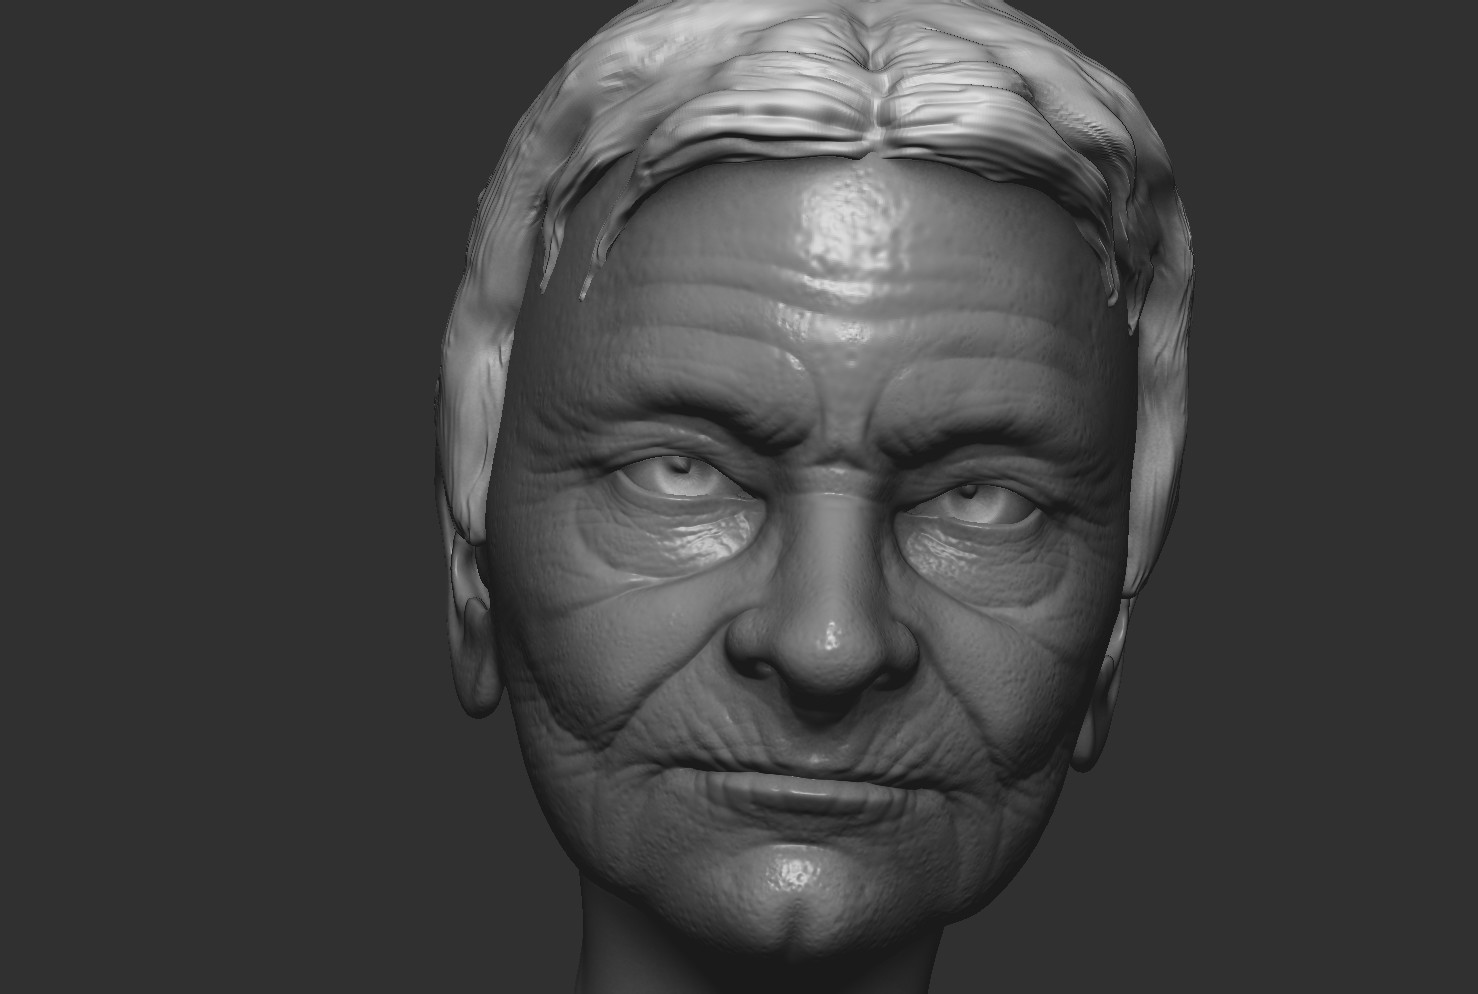 ZBrush sculpt...about 1.5 hours.